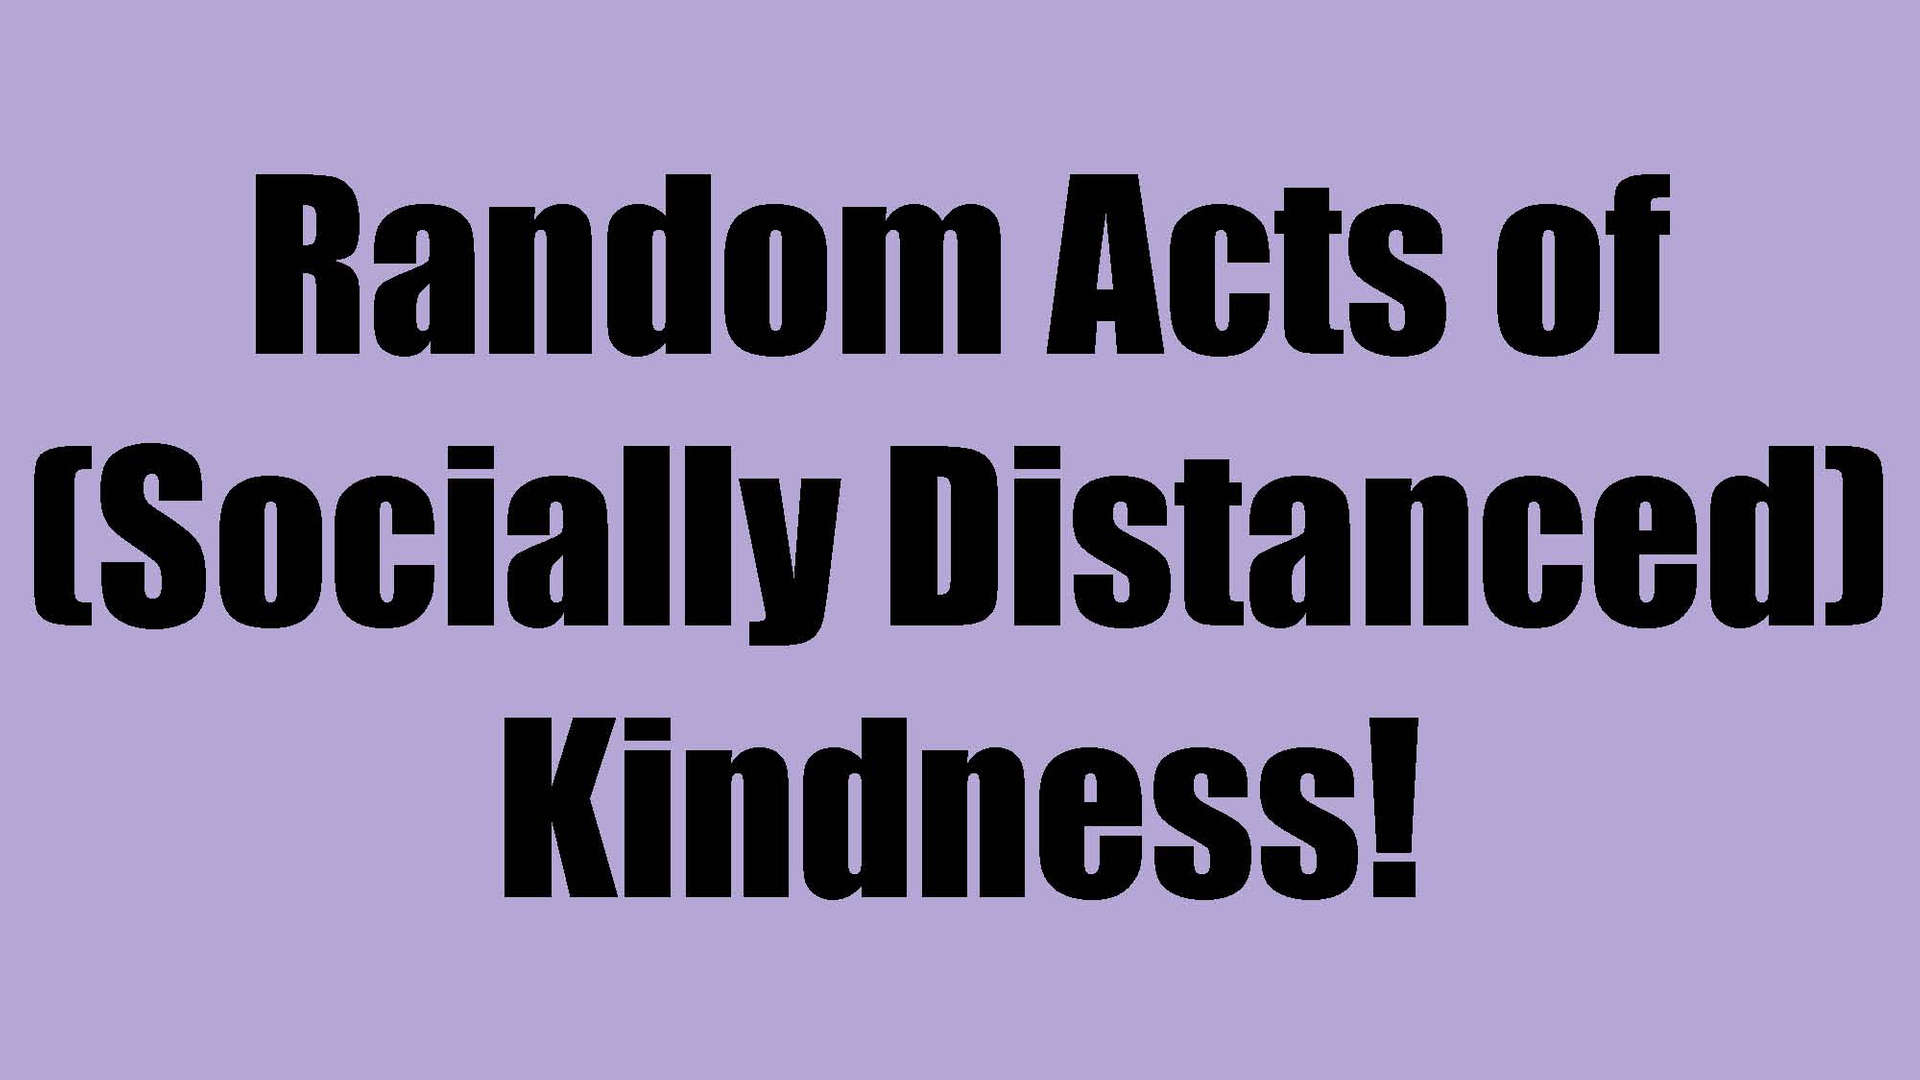 Social Distancing-Random Acts of Kindness